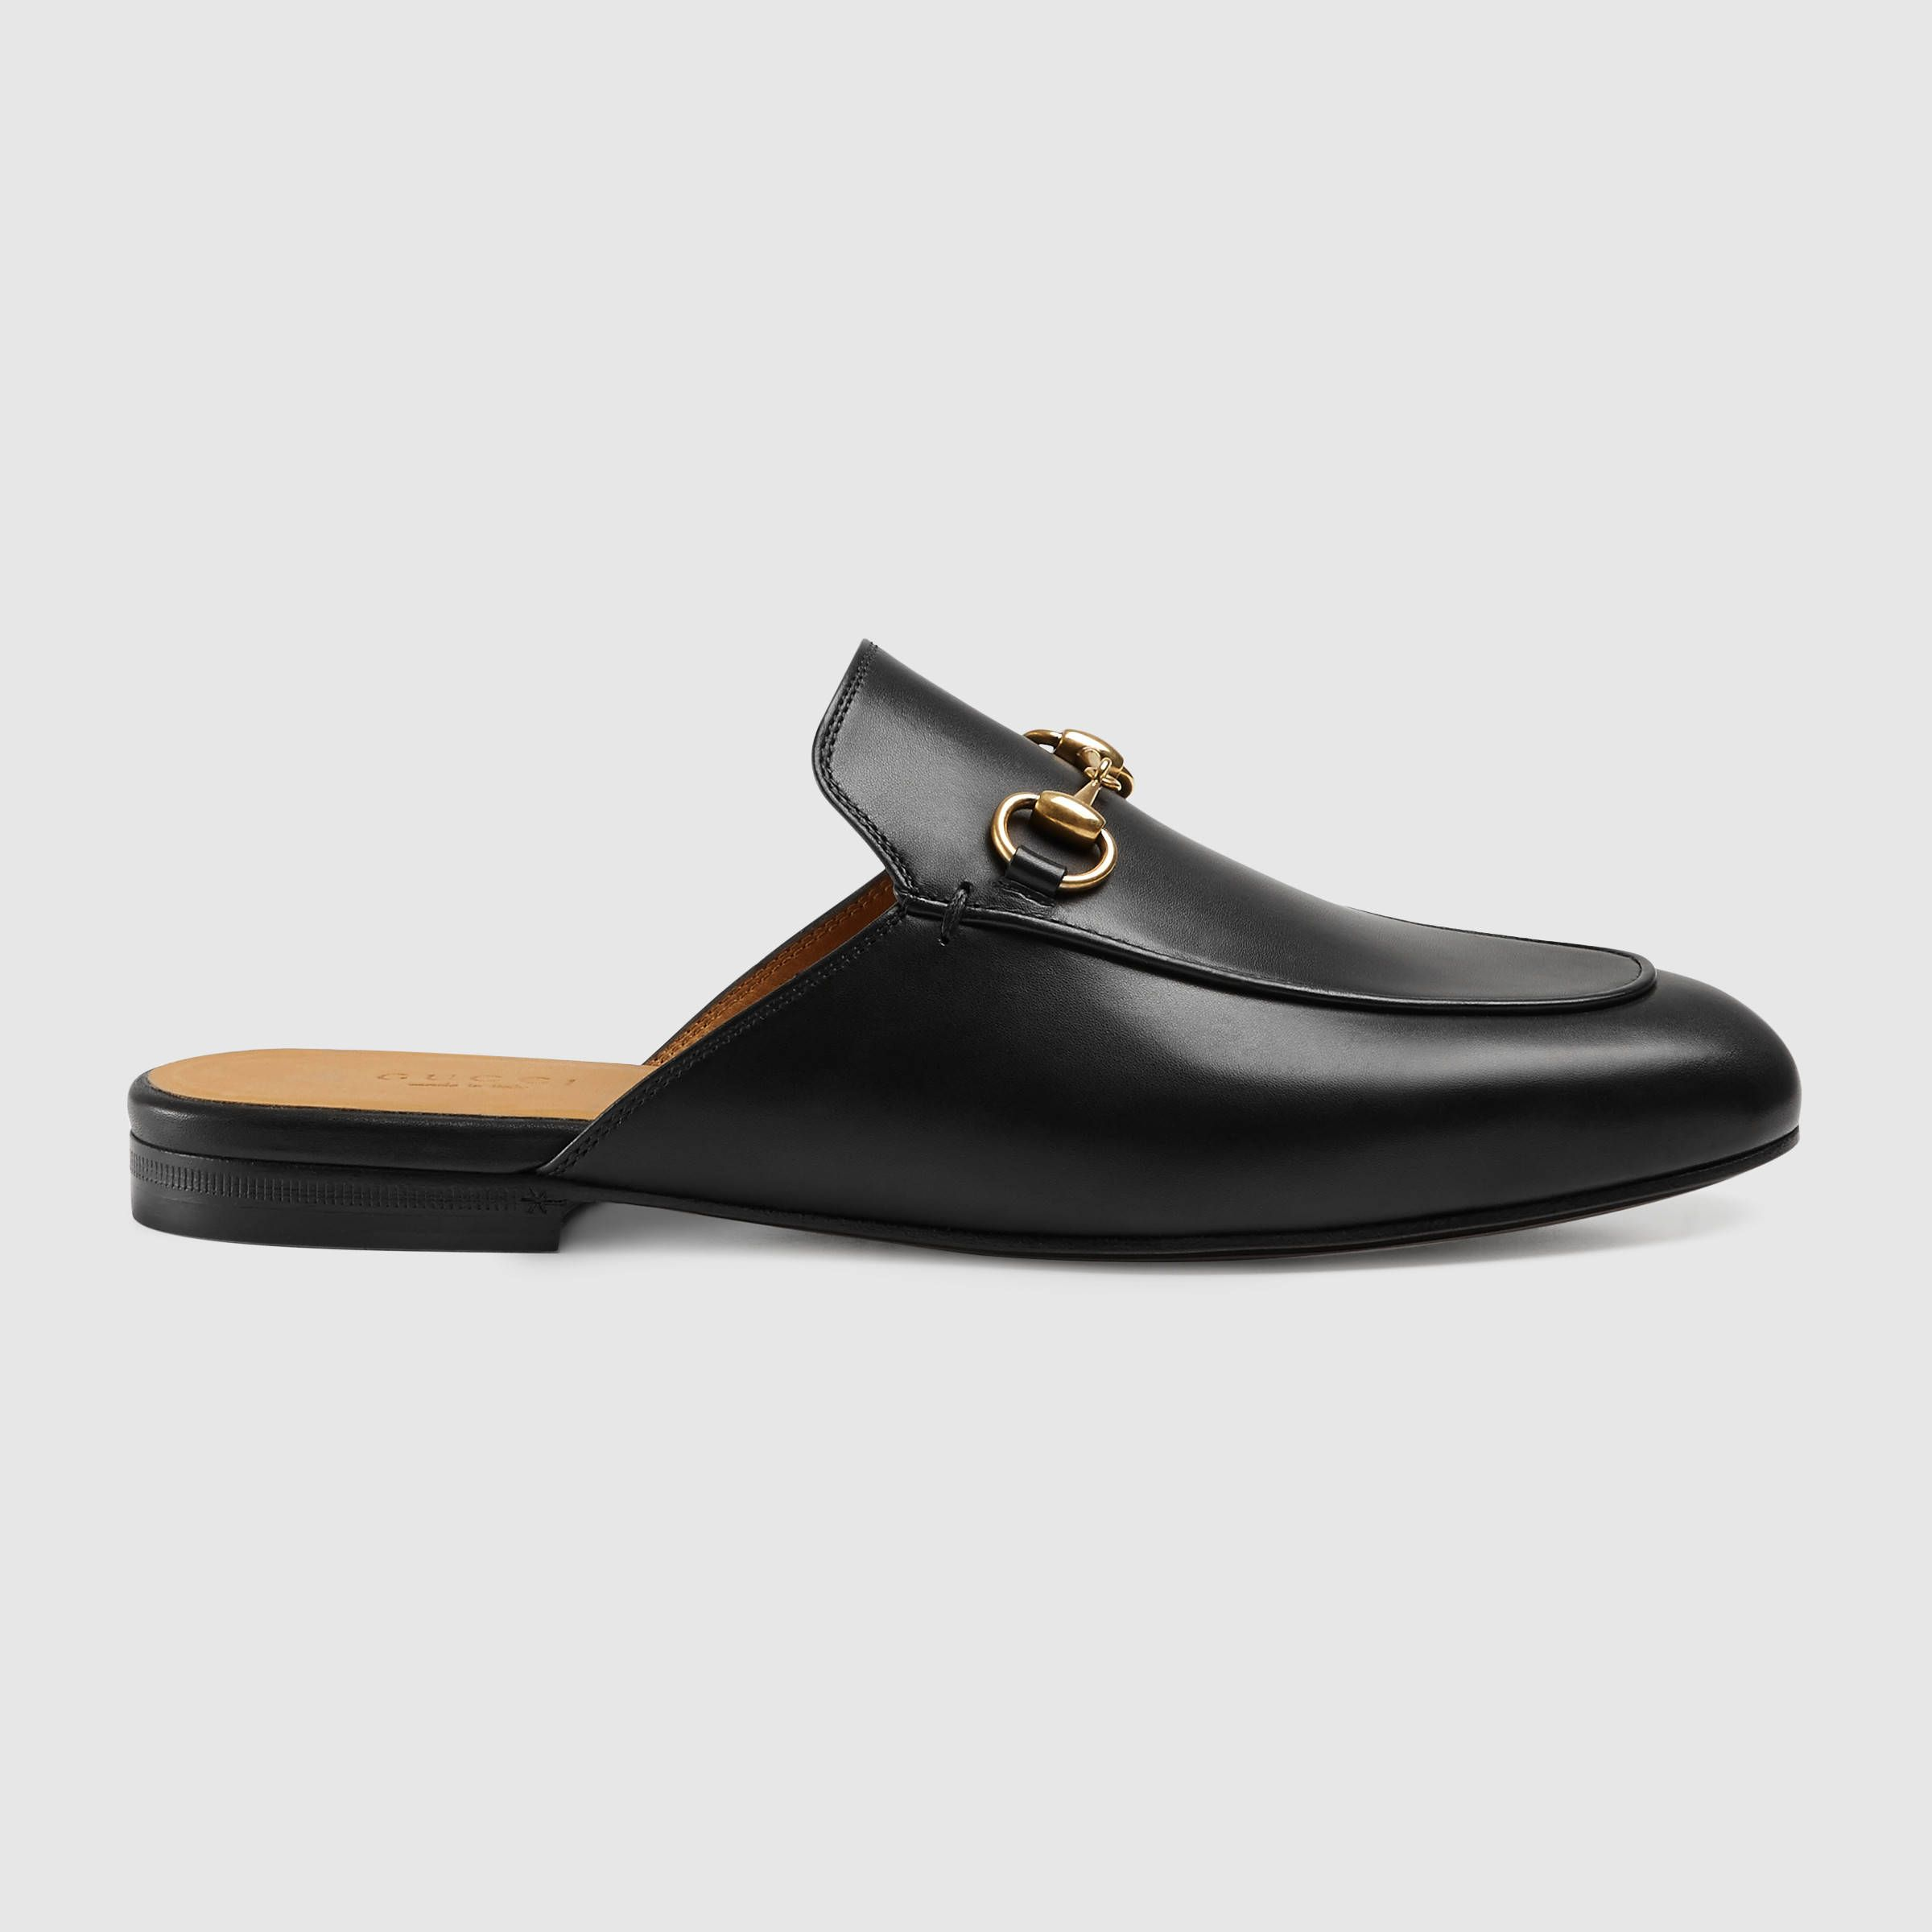 d8d78db81 Princetown leather slipper | Shopping List | Leather slippers, Gucci ...